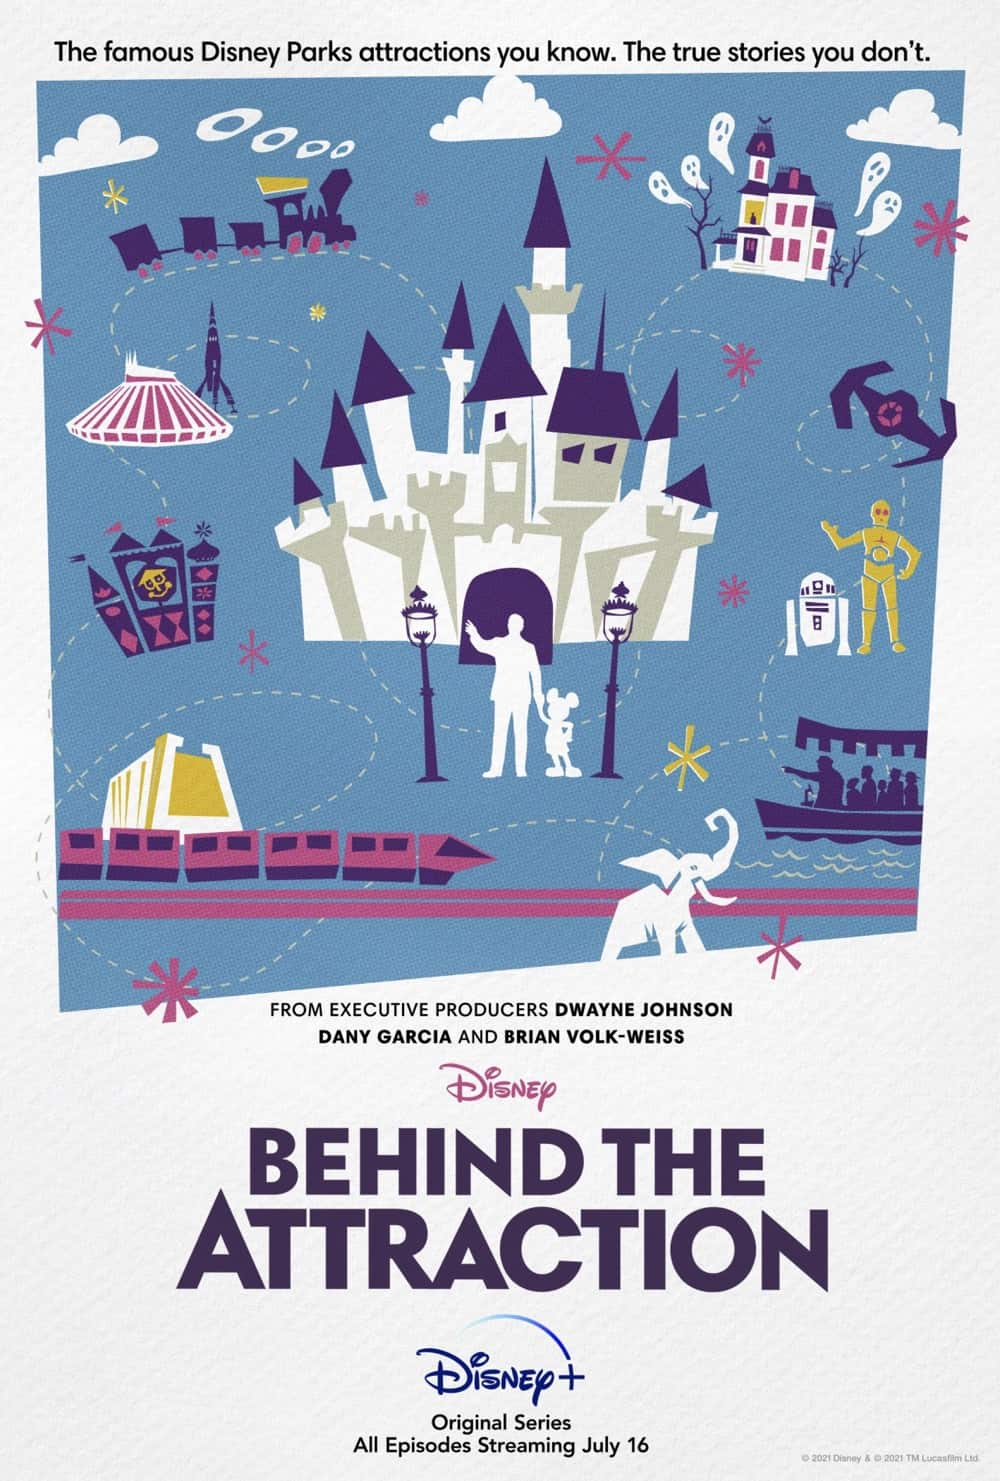 Behind The Attraction Disney+